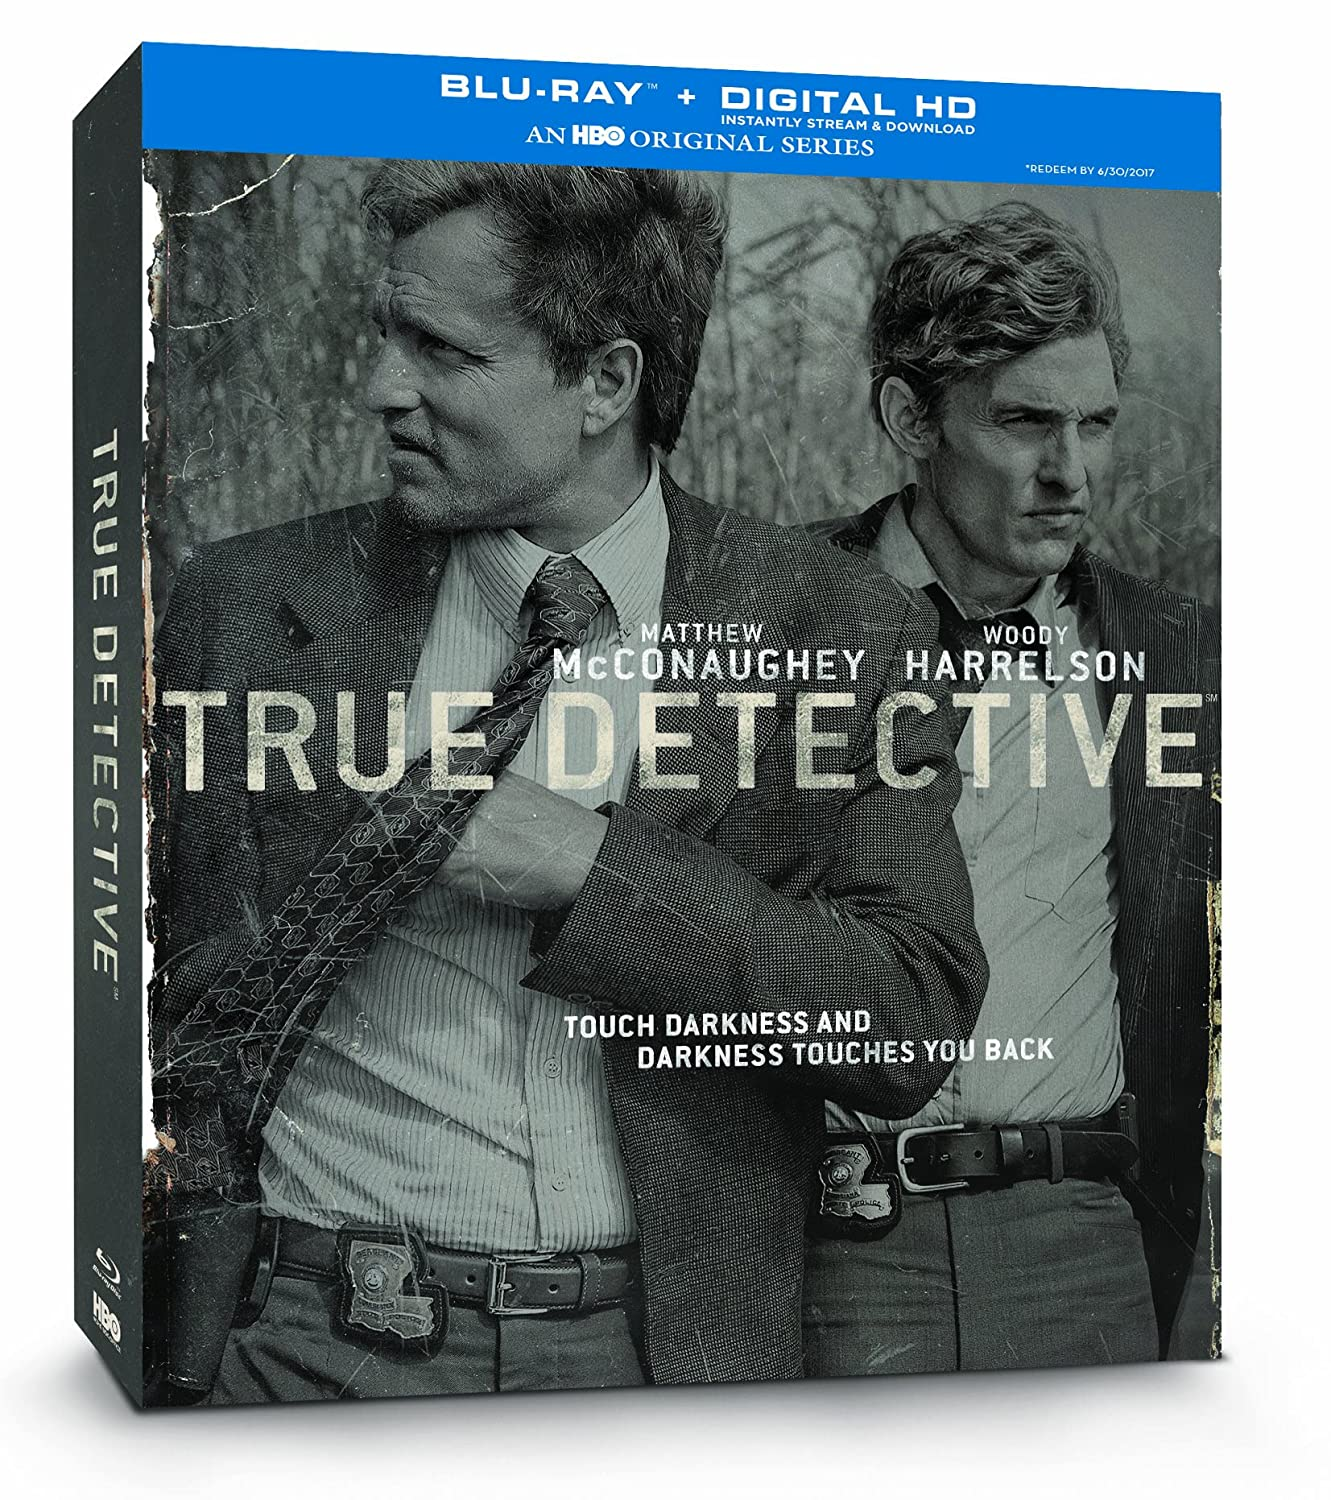 True Detective: Season 1 [Blu-ray + Digital Copy] Matthew McConaughey Woody Harrelson Michelle Monaghan Michael Potts